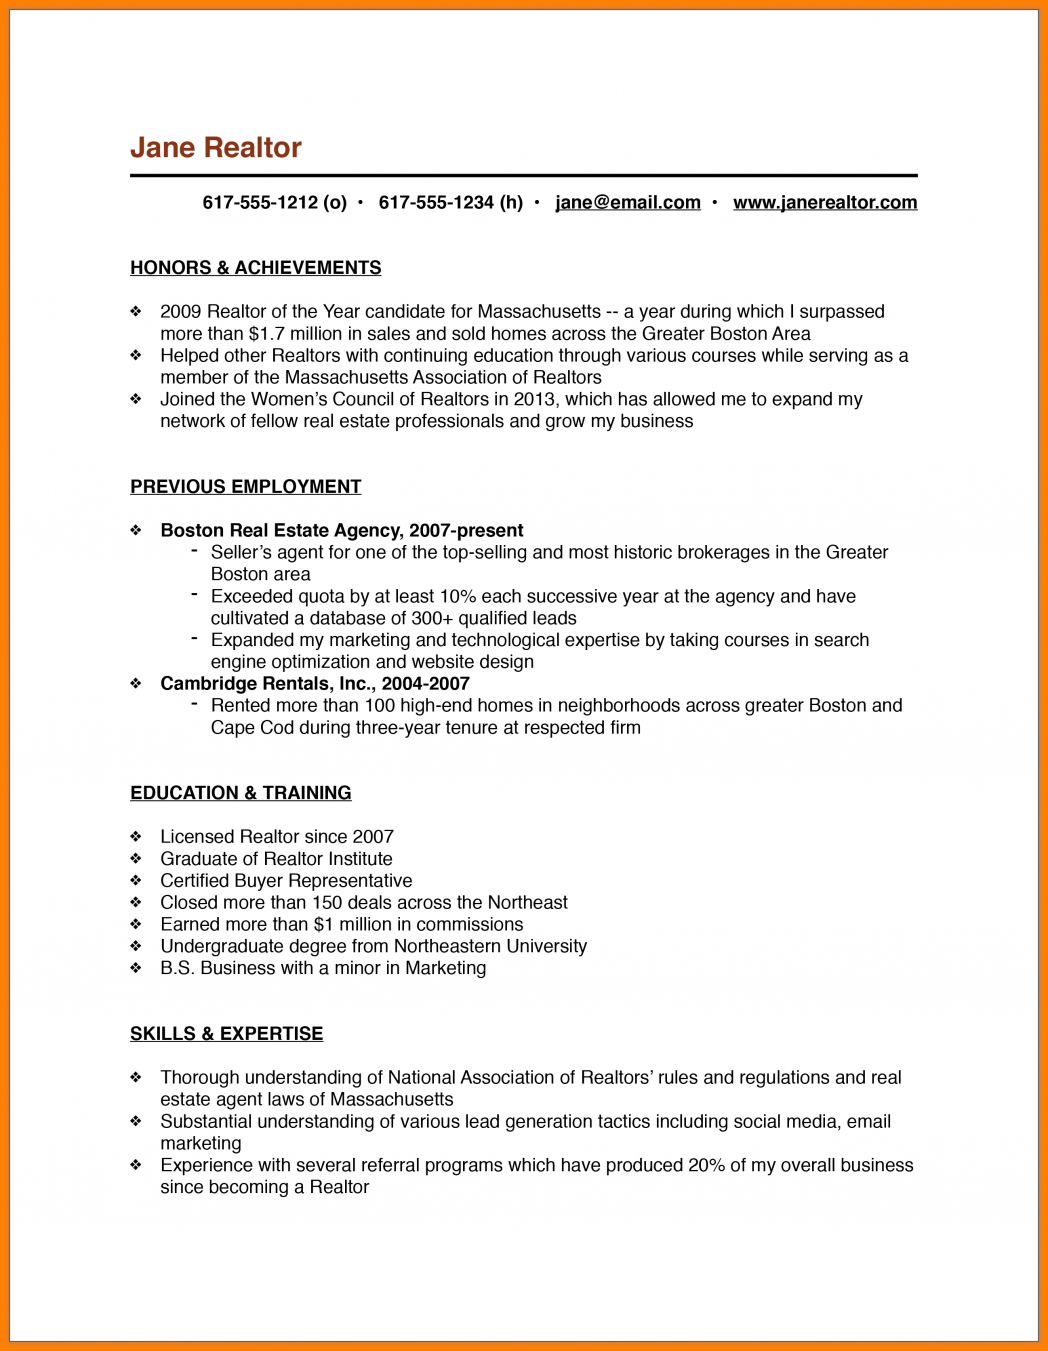 012 Social Work Essay Writers Custom Paper Academic Writing Service Scholarship Examples Awesome Collection Of Personal Statement Stunning Free Graduate Evidence Based Practice In 1048x1351 Why I Outstanding Want To Be A Worker Study Do Become Became Full